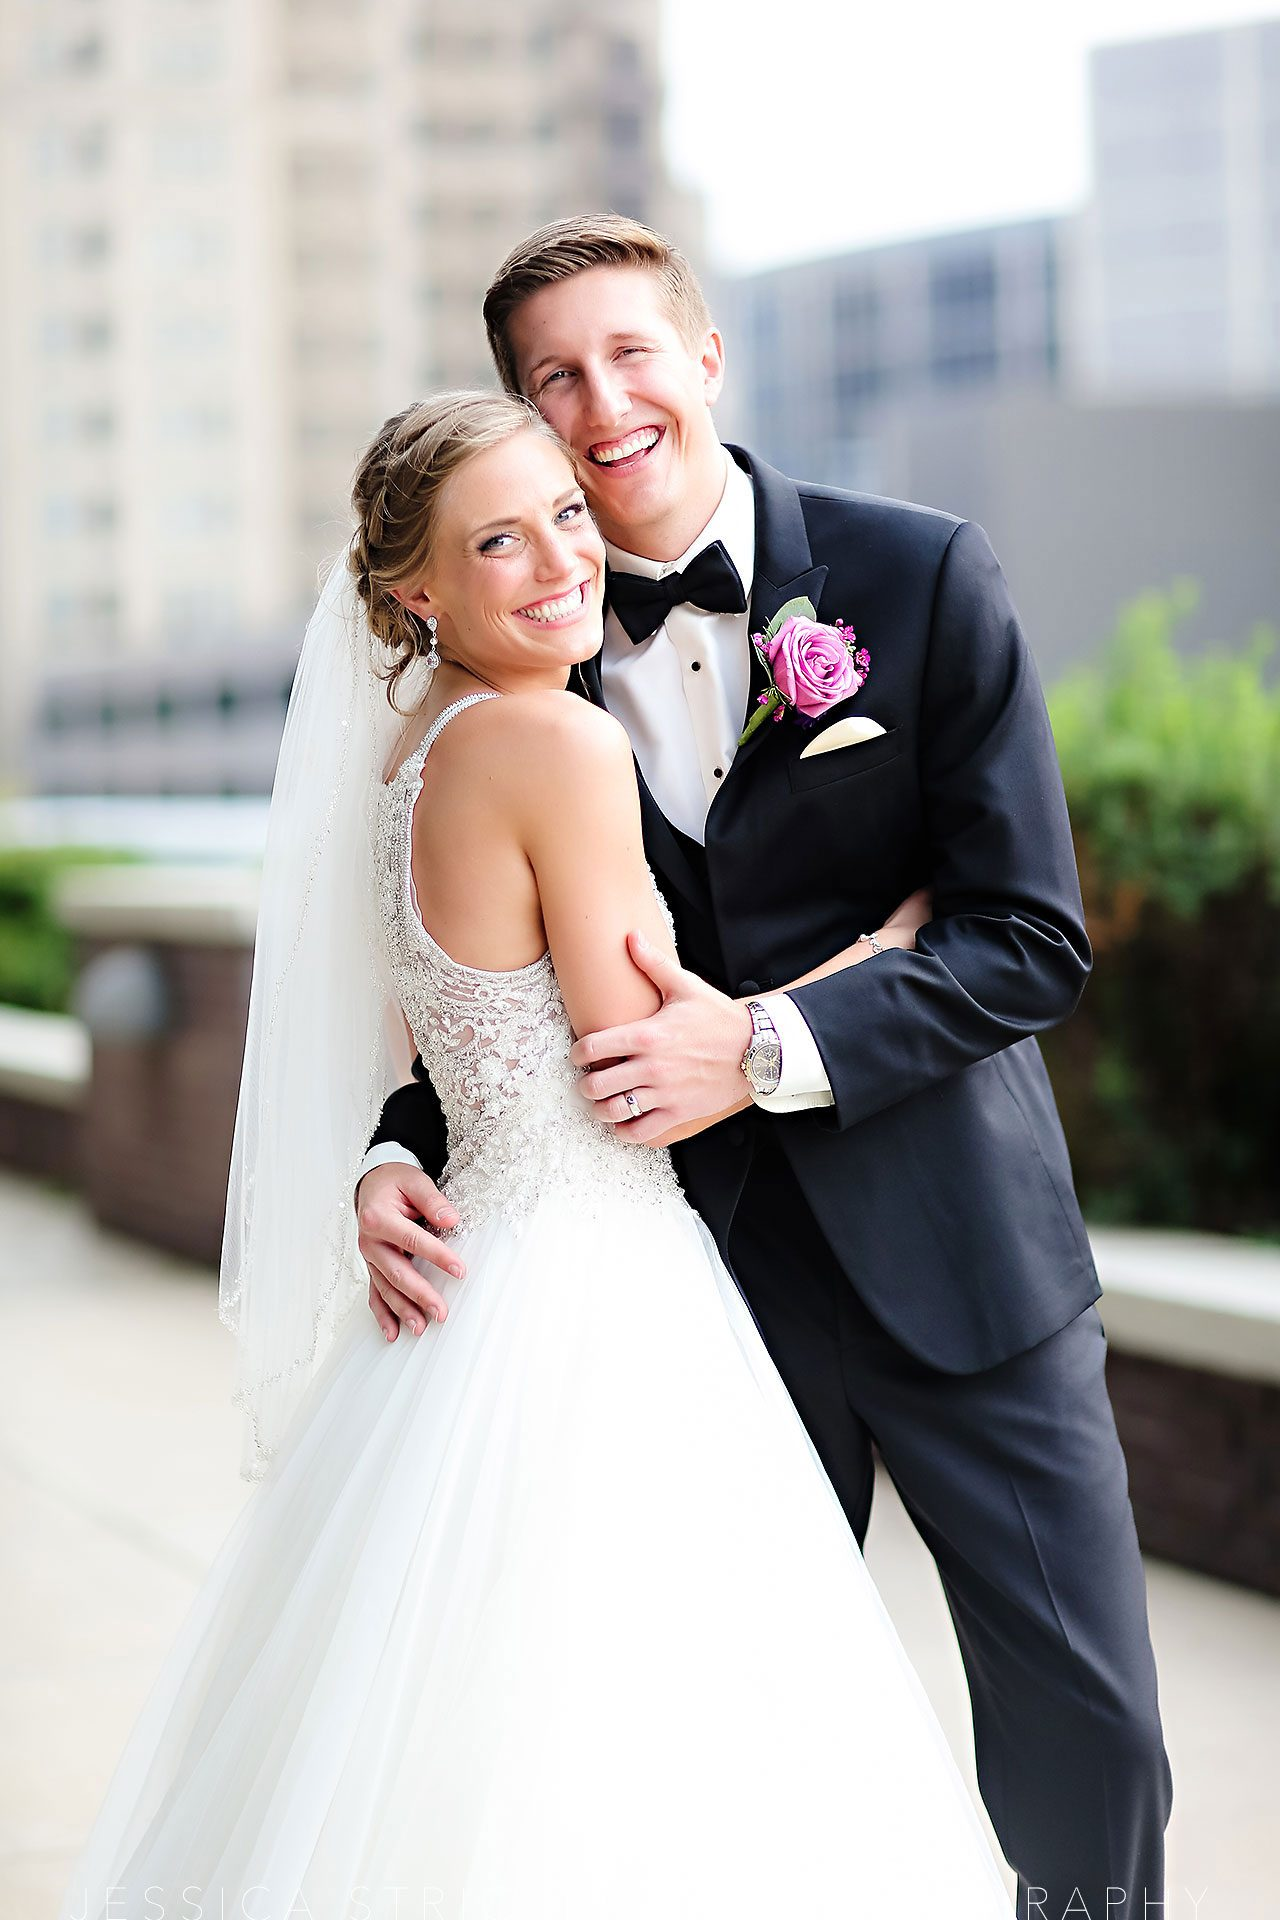 Serra Alex Regions Tower Indianapolis Wedding 261 watermarked